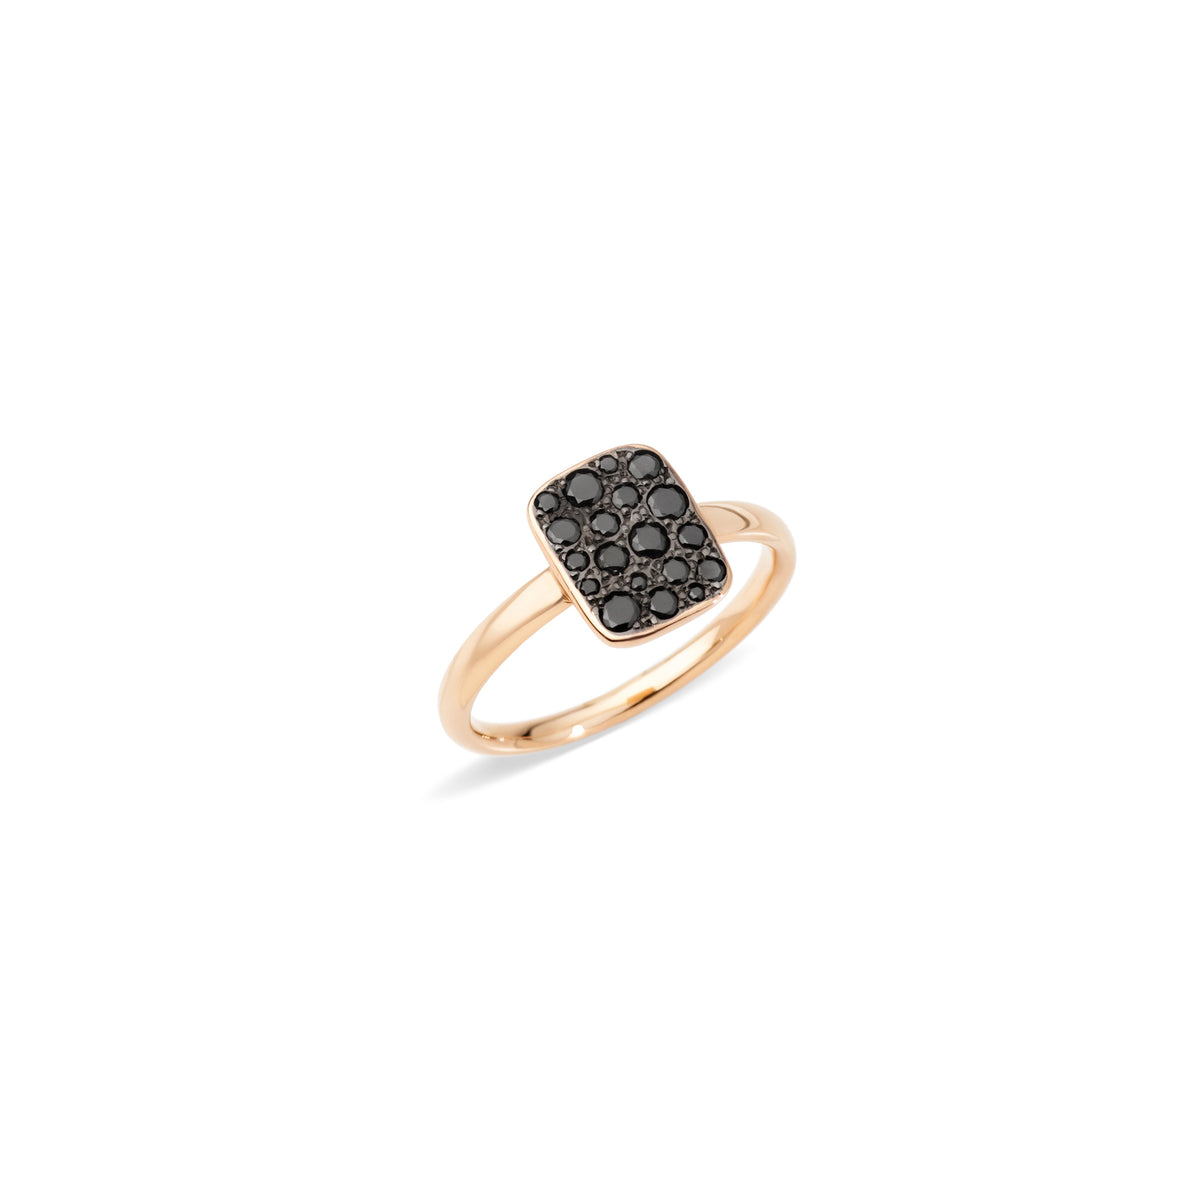 Sabbia Rectangular Ring in 18k Rose Gold with Black Diamonds